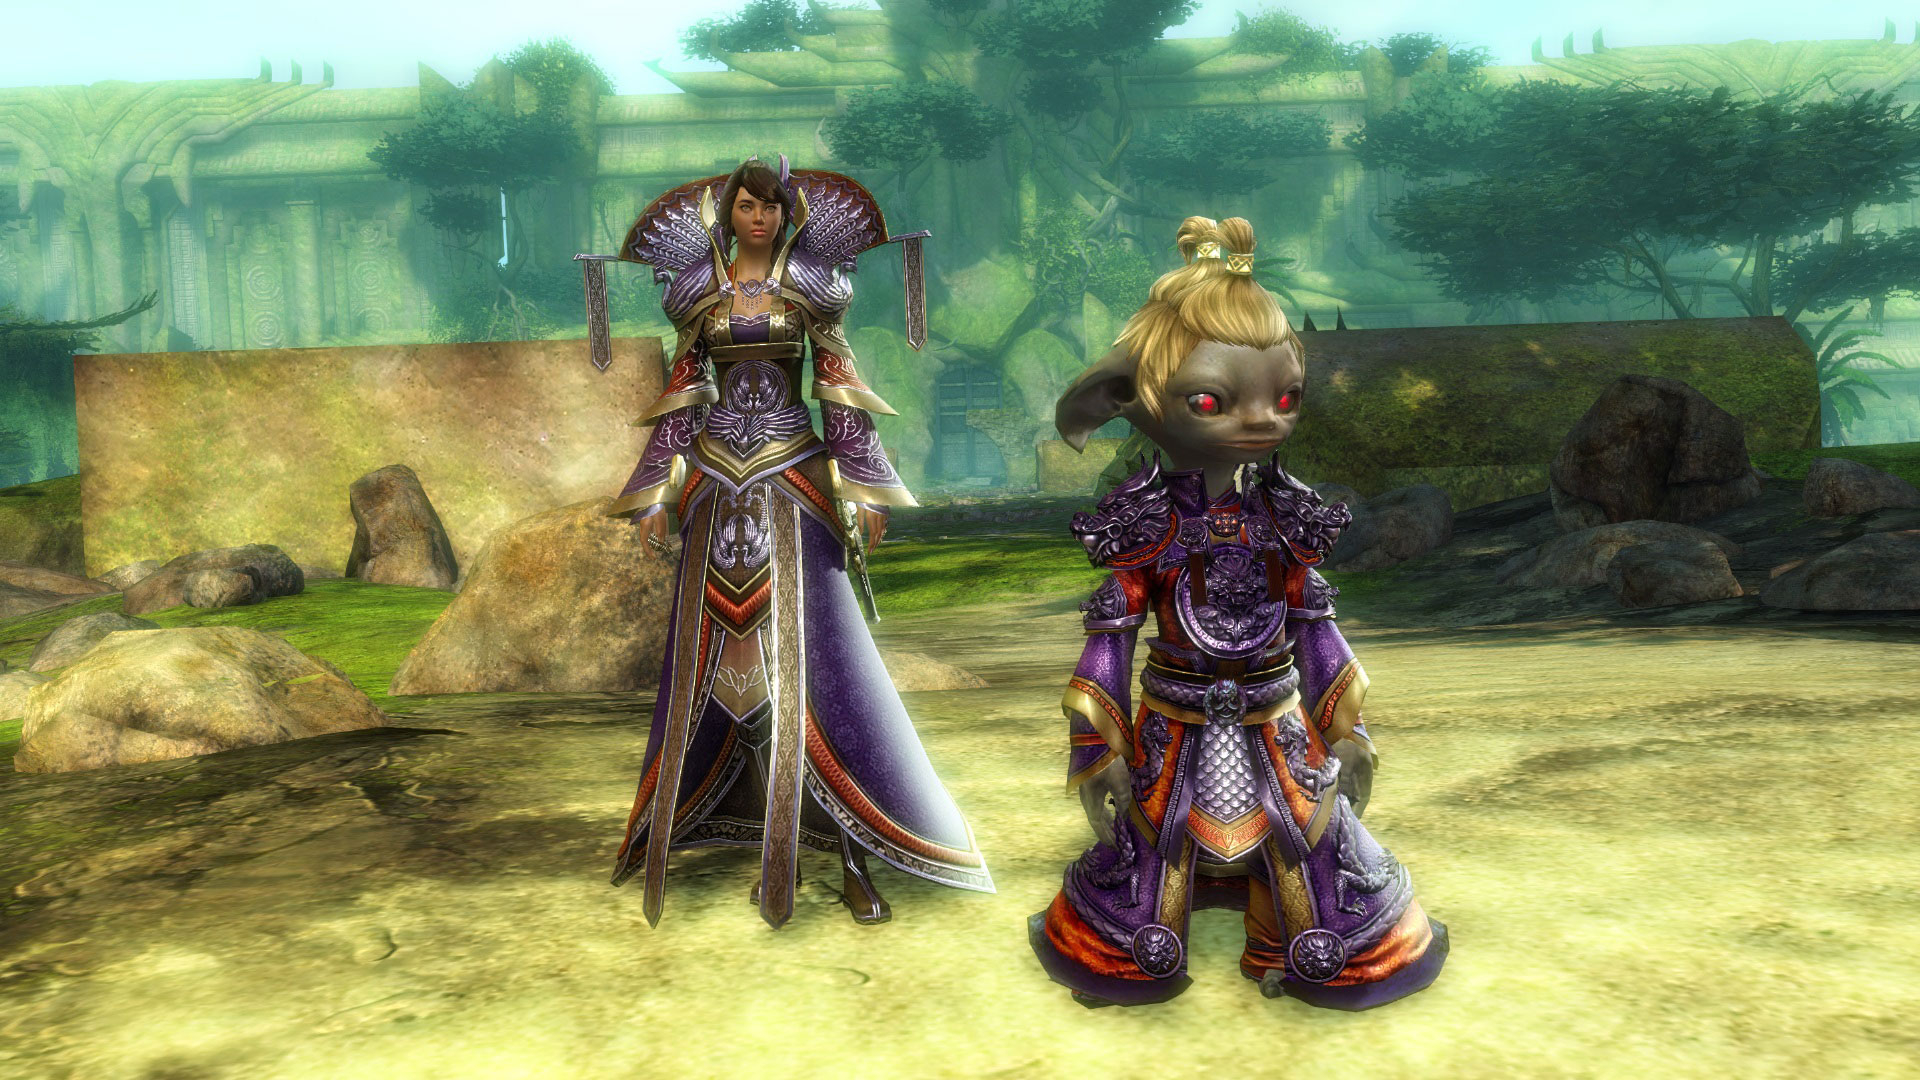 Guild Wars 2 gets into the Lunar New Year spirit, as new weapons